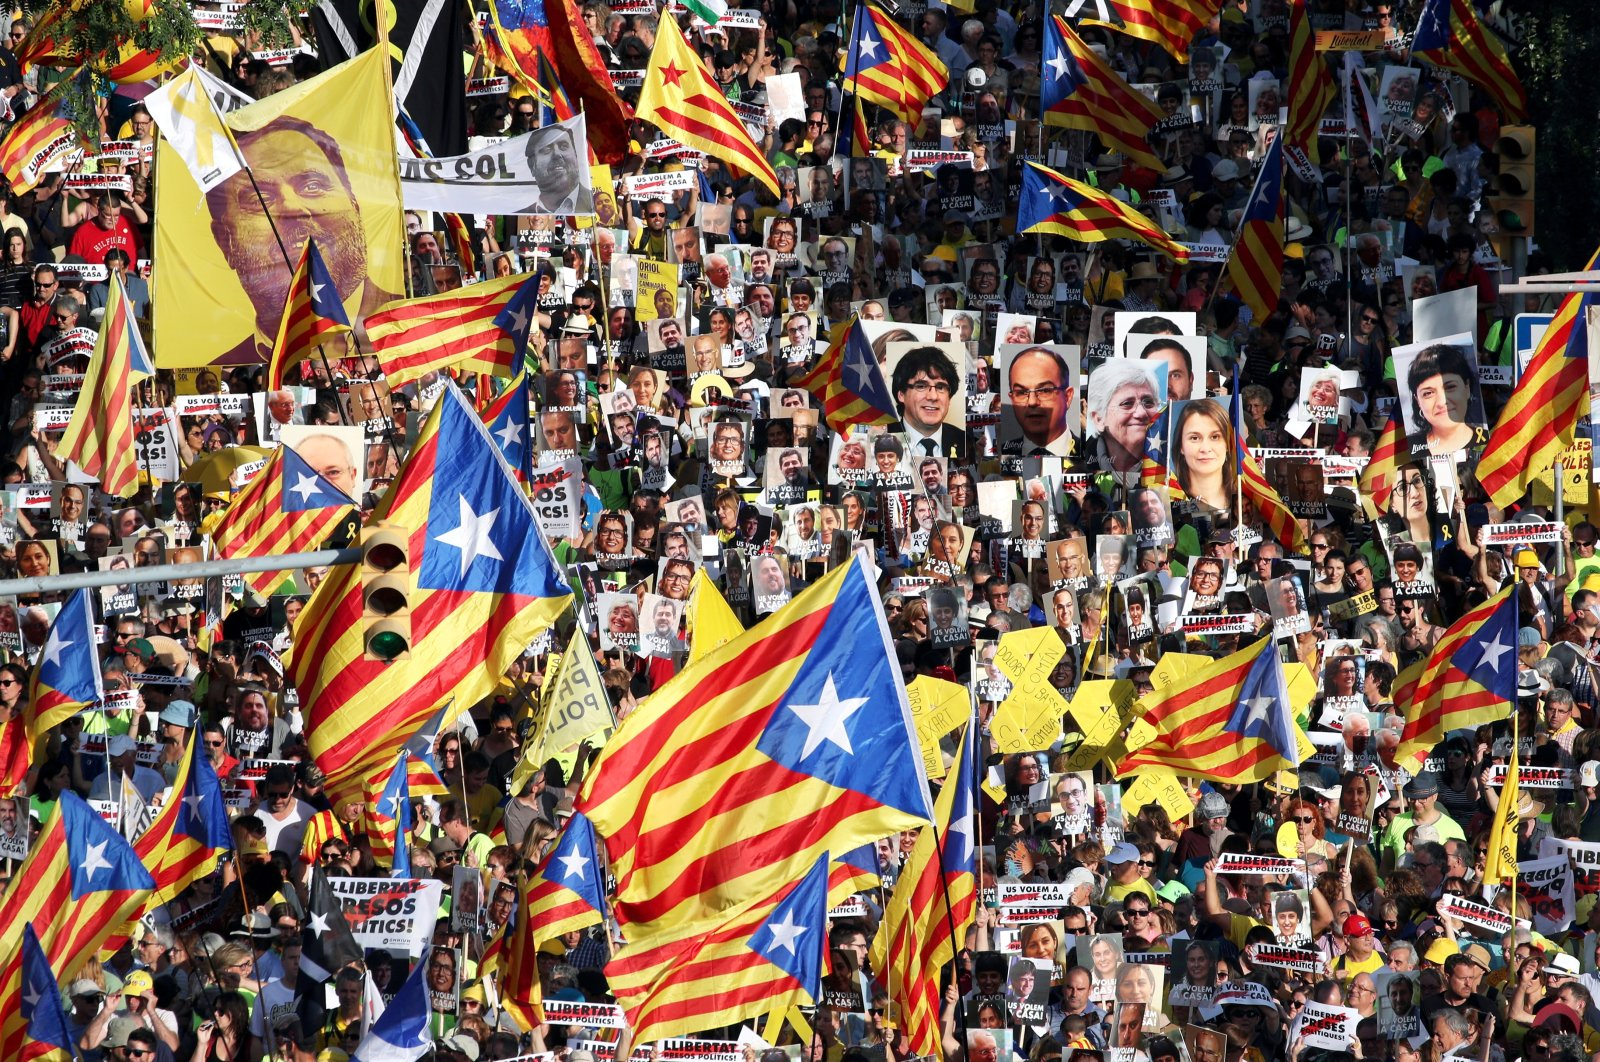 People hold banners during a protest against the imprisonment of the Catalan separatist leaders, in Barcelona, Spain, July 14, 2018. (Reuters Photo)